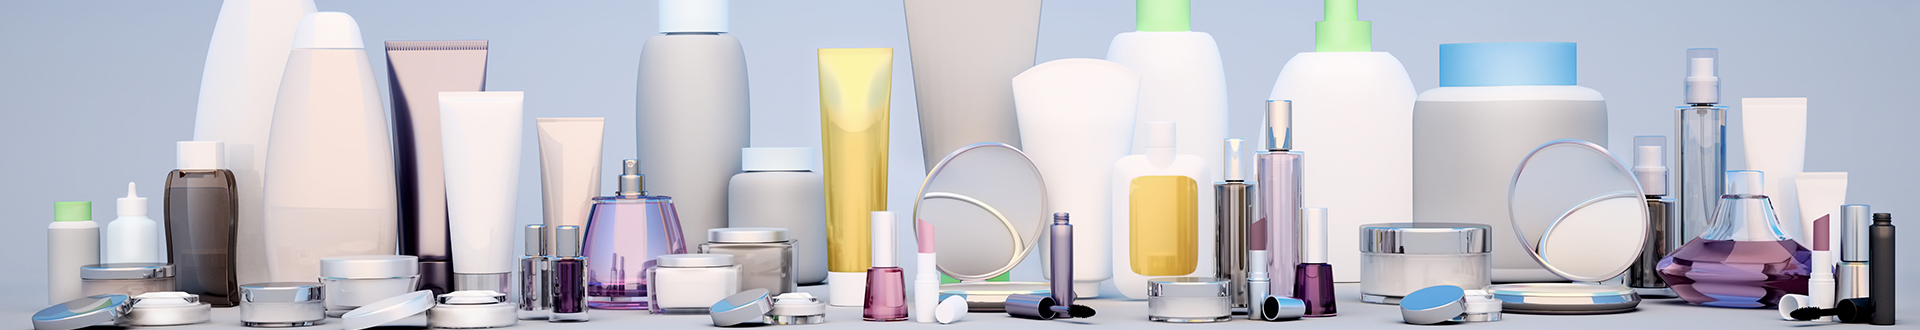 emballages-cosmetiques